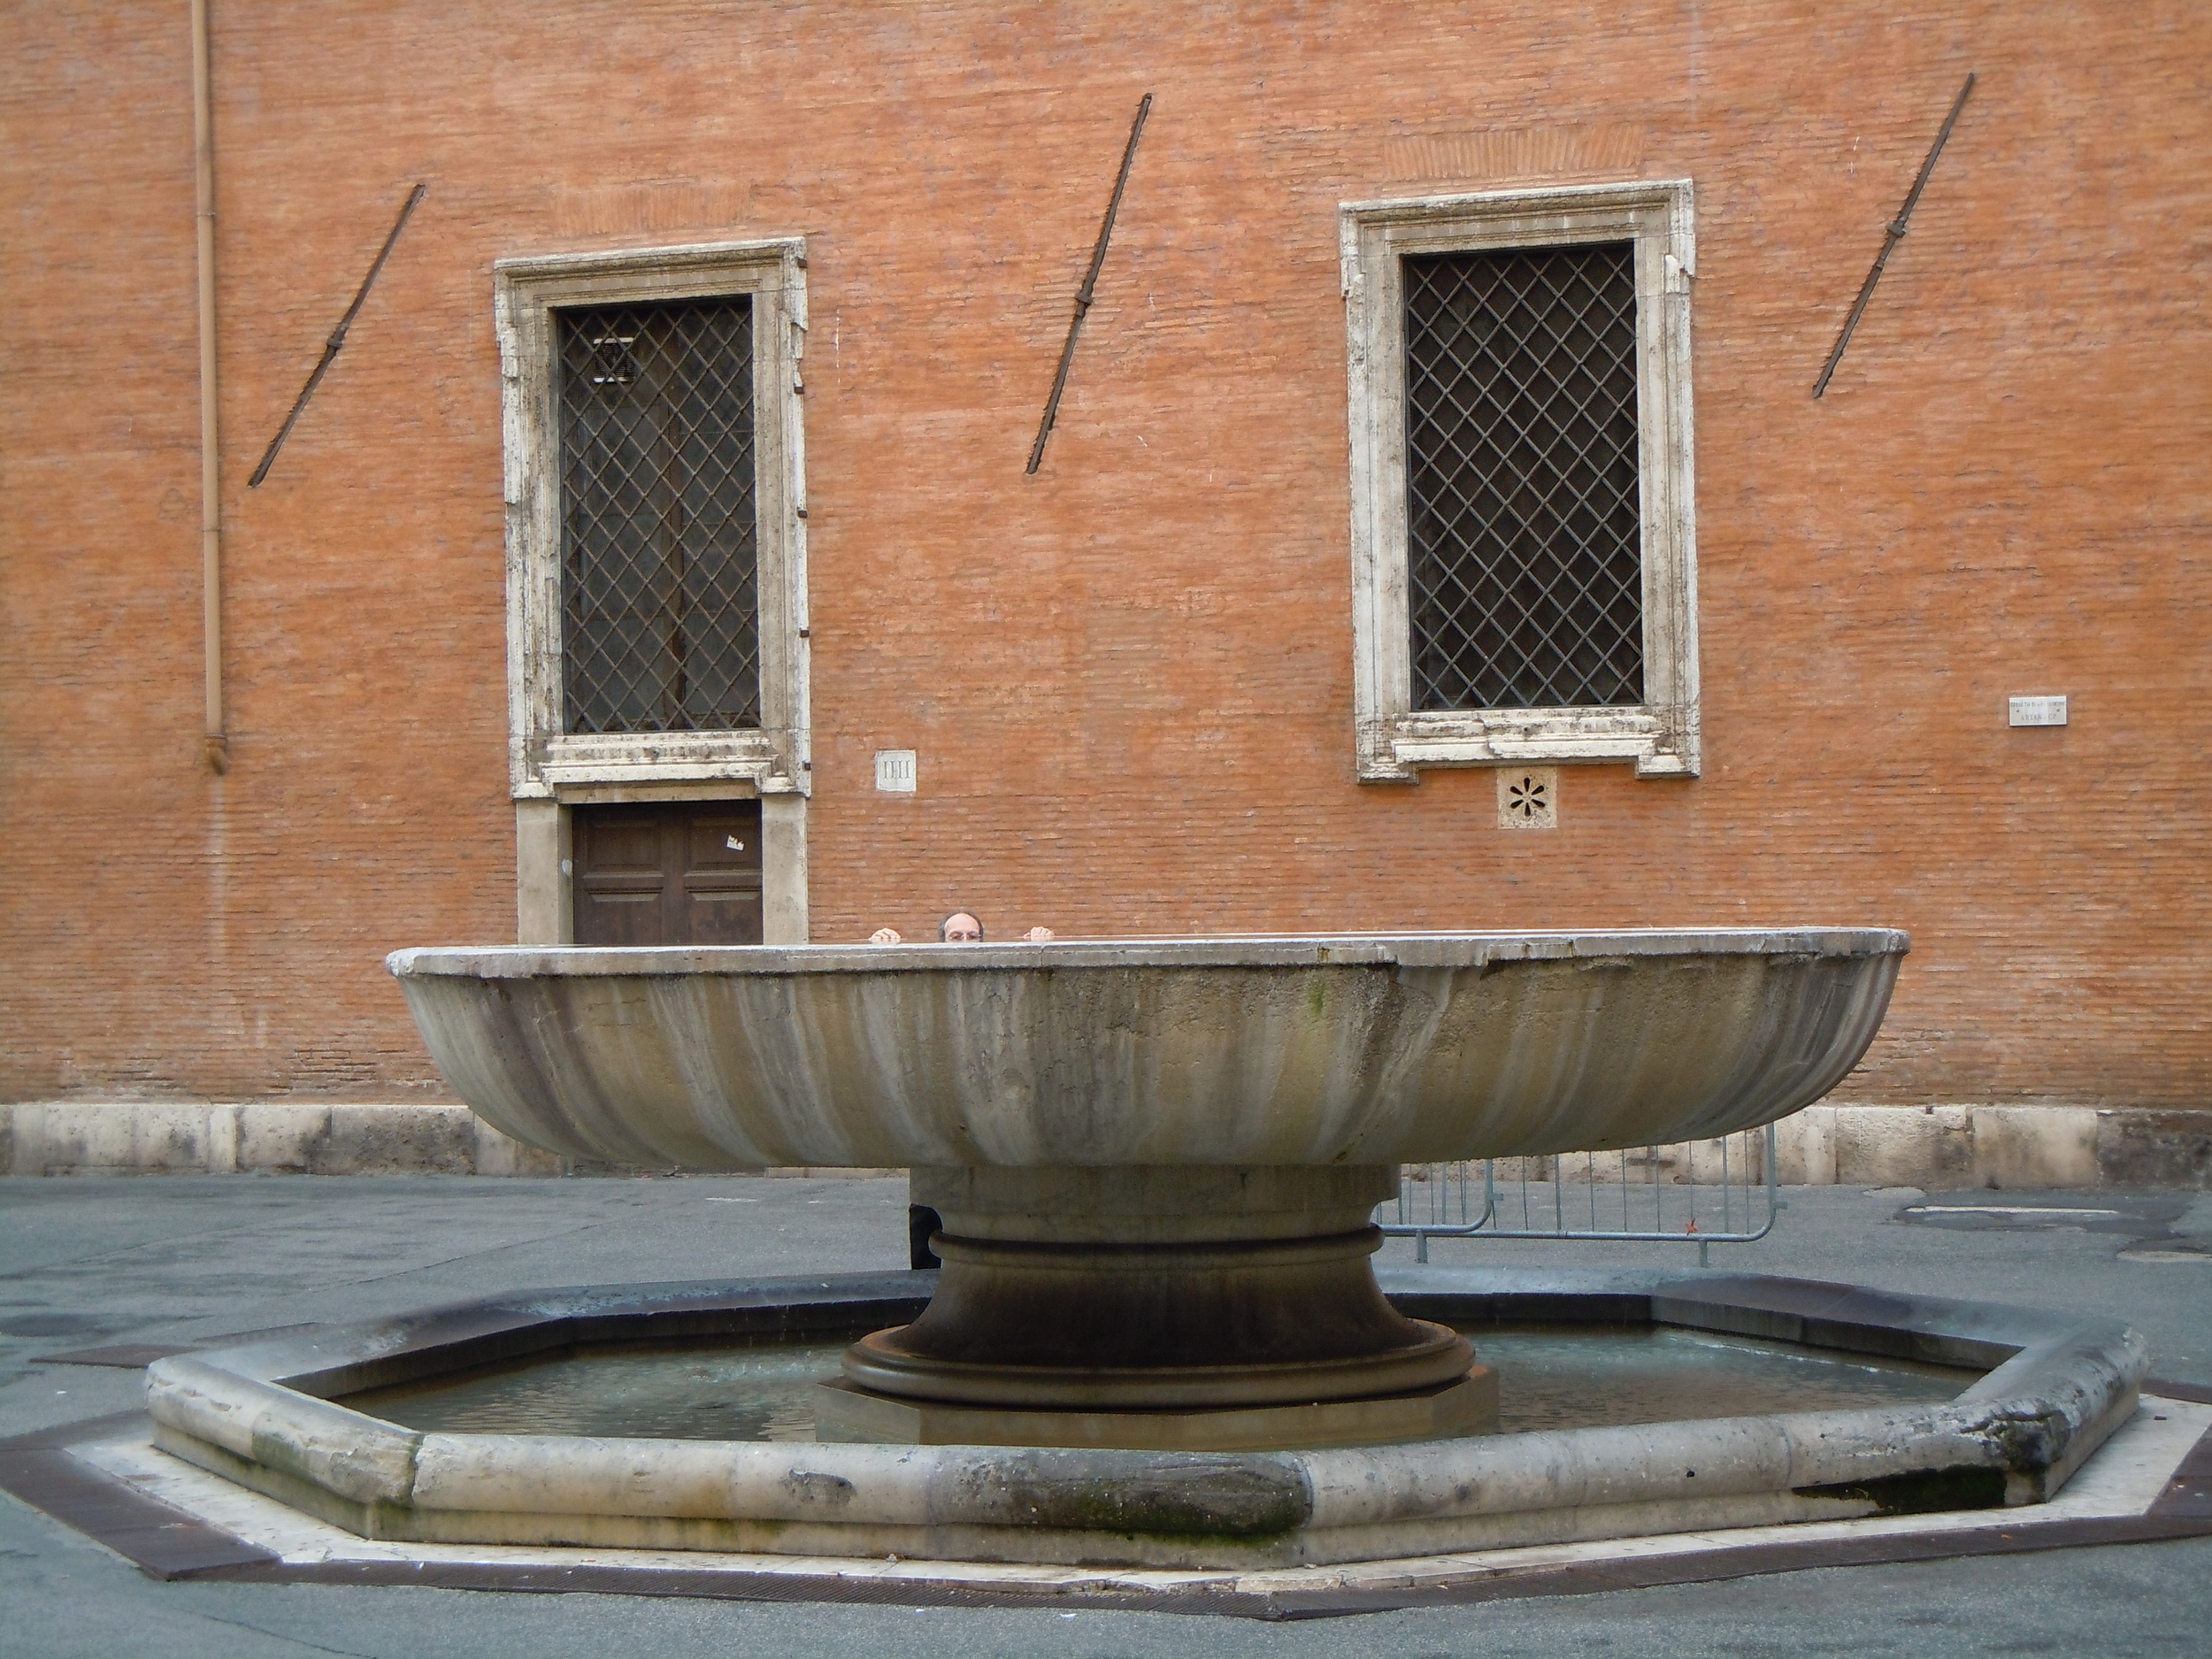 Fountain of Rome